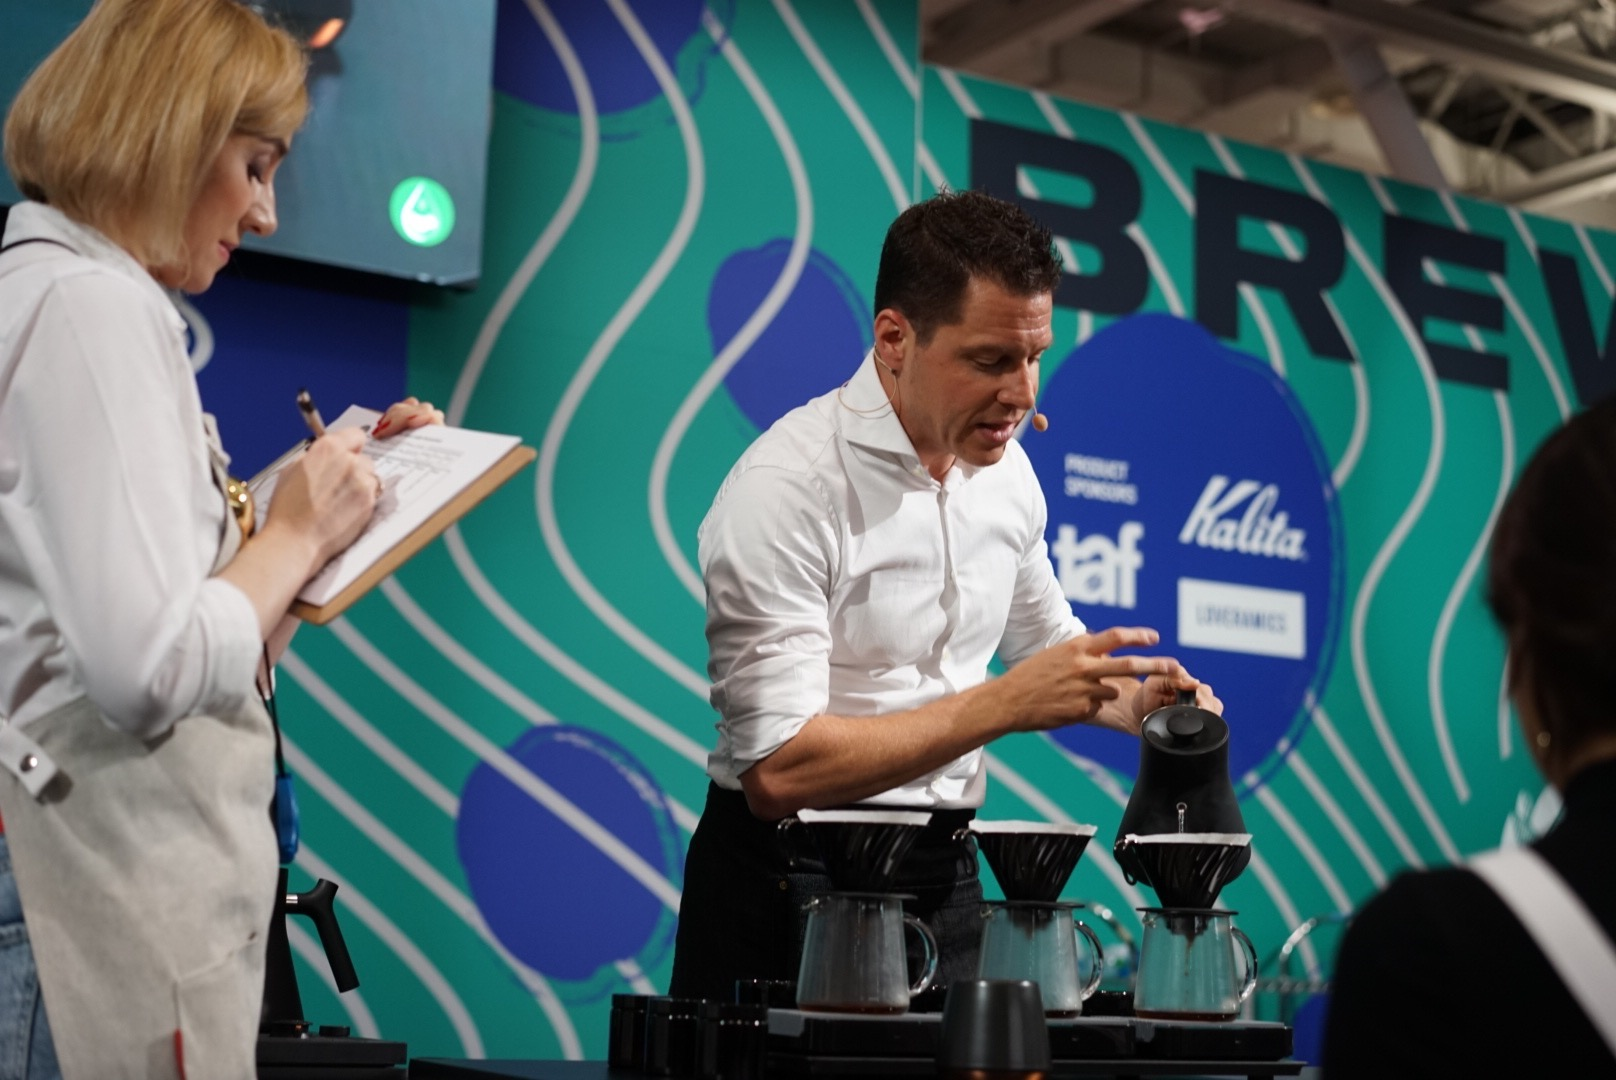 Competing With Our Coffee | Takesi Catuaí for Brewers Cup